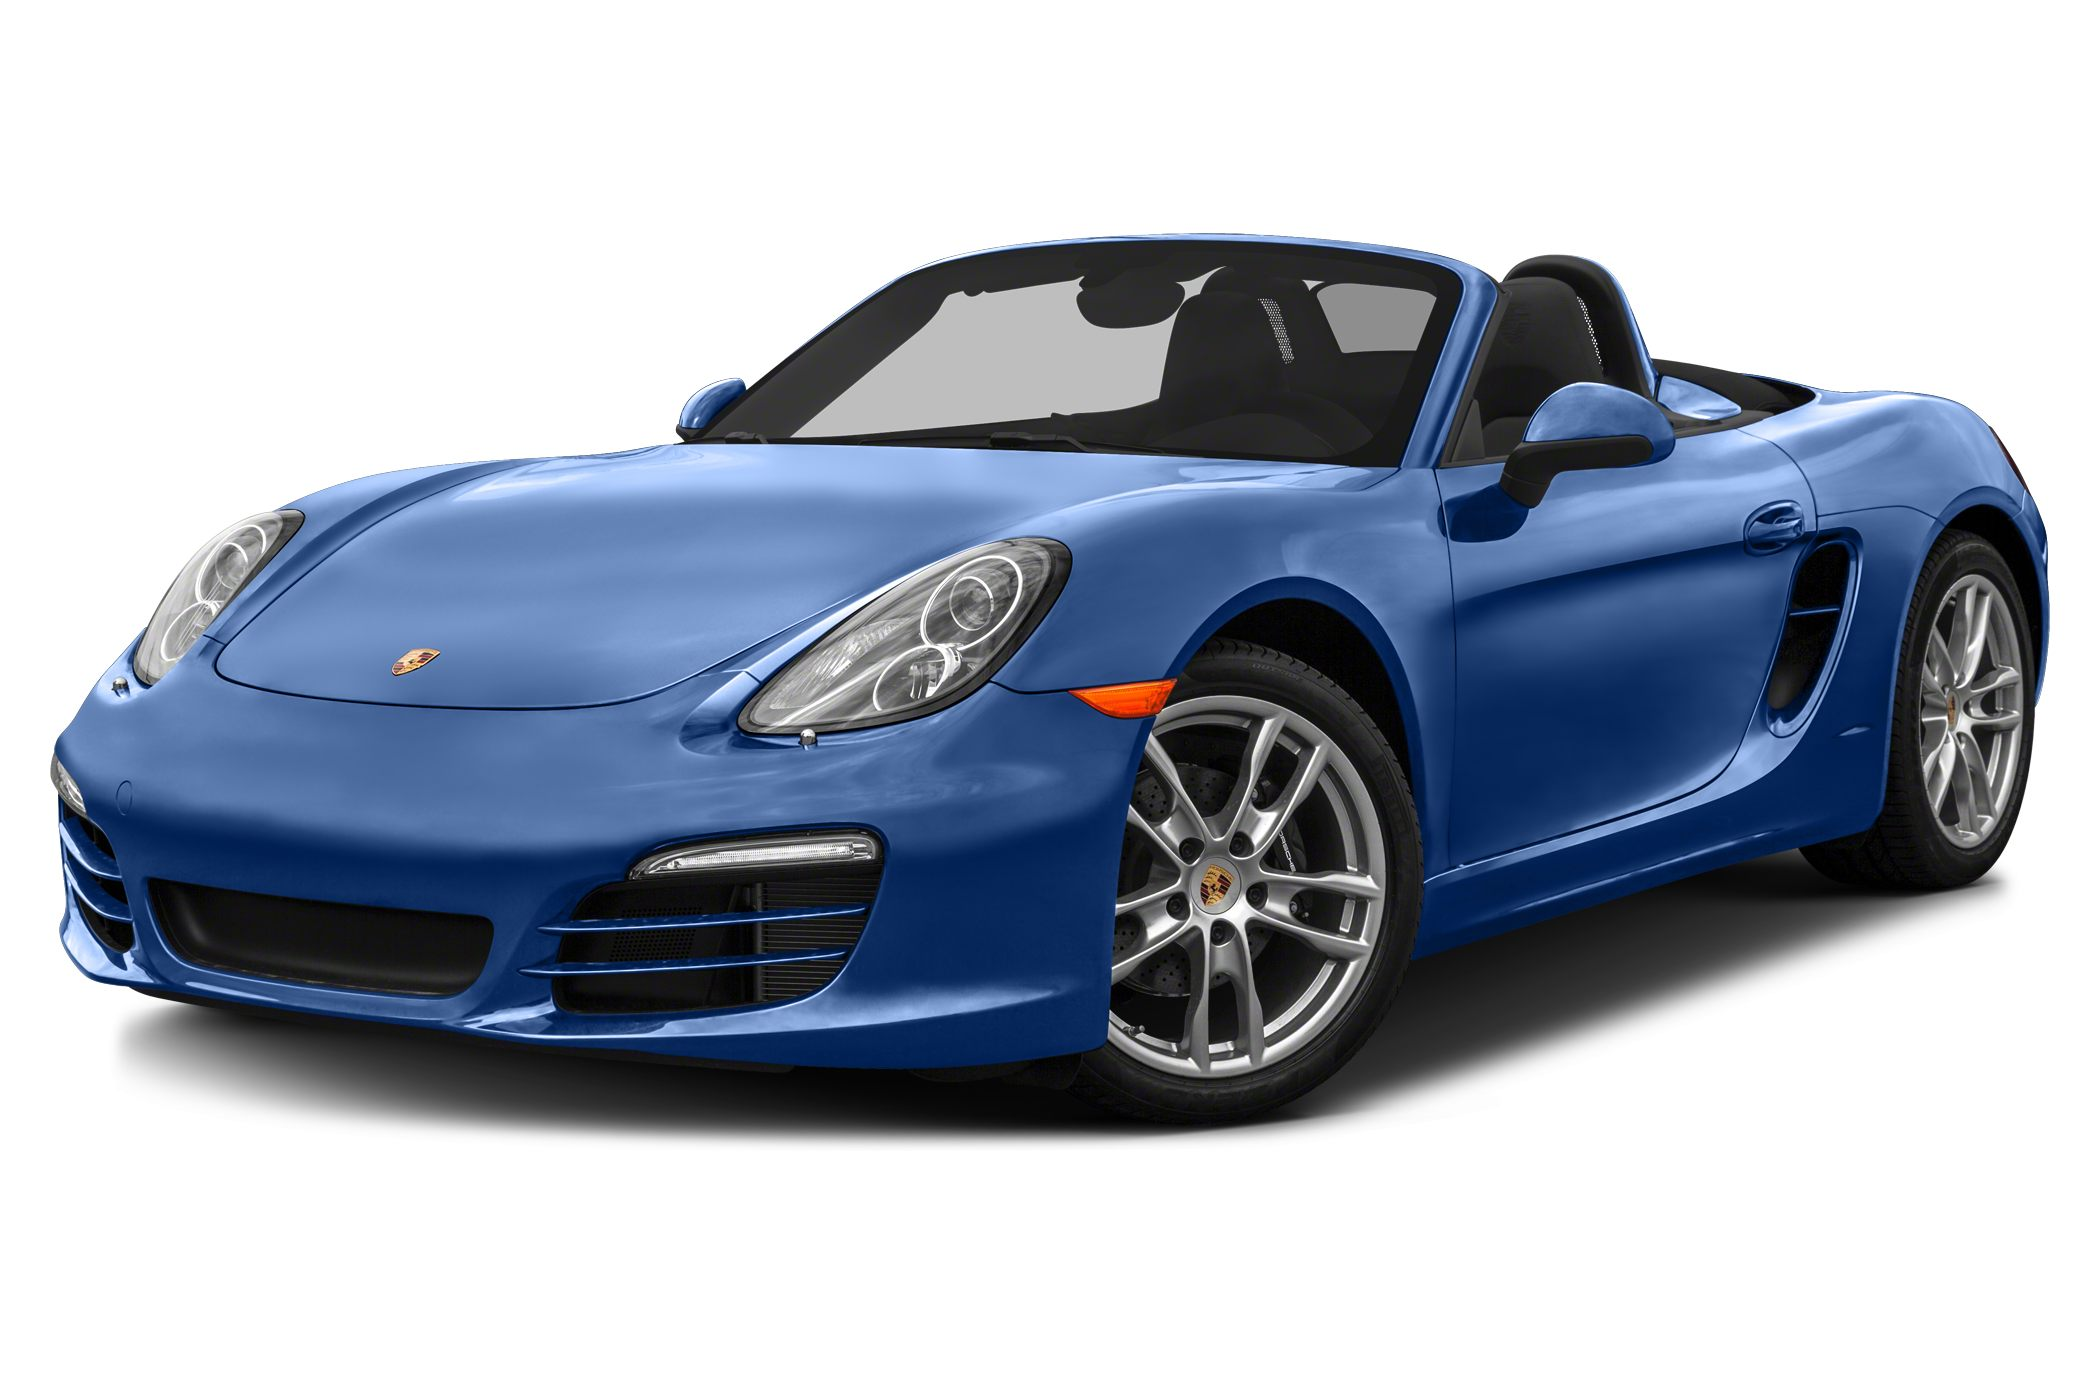 Porsche Boxster News, Photos And Buying Information